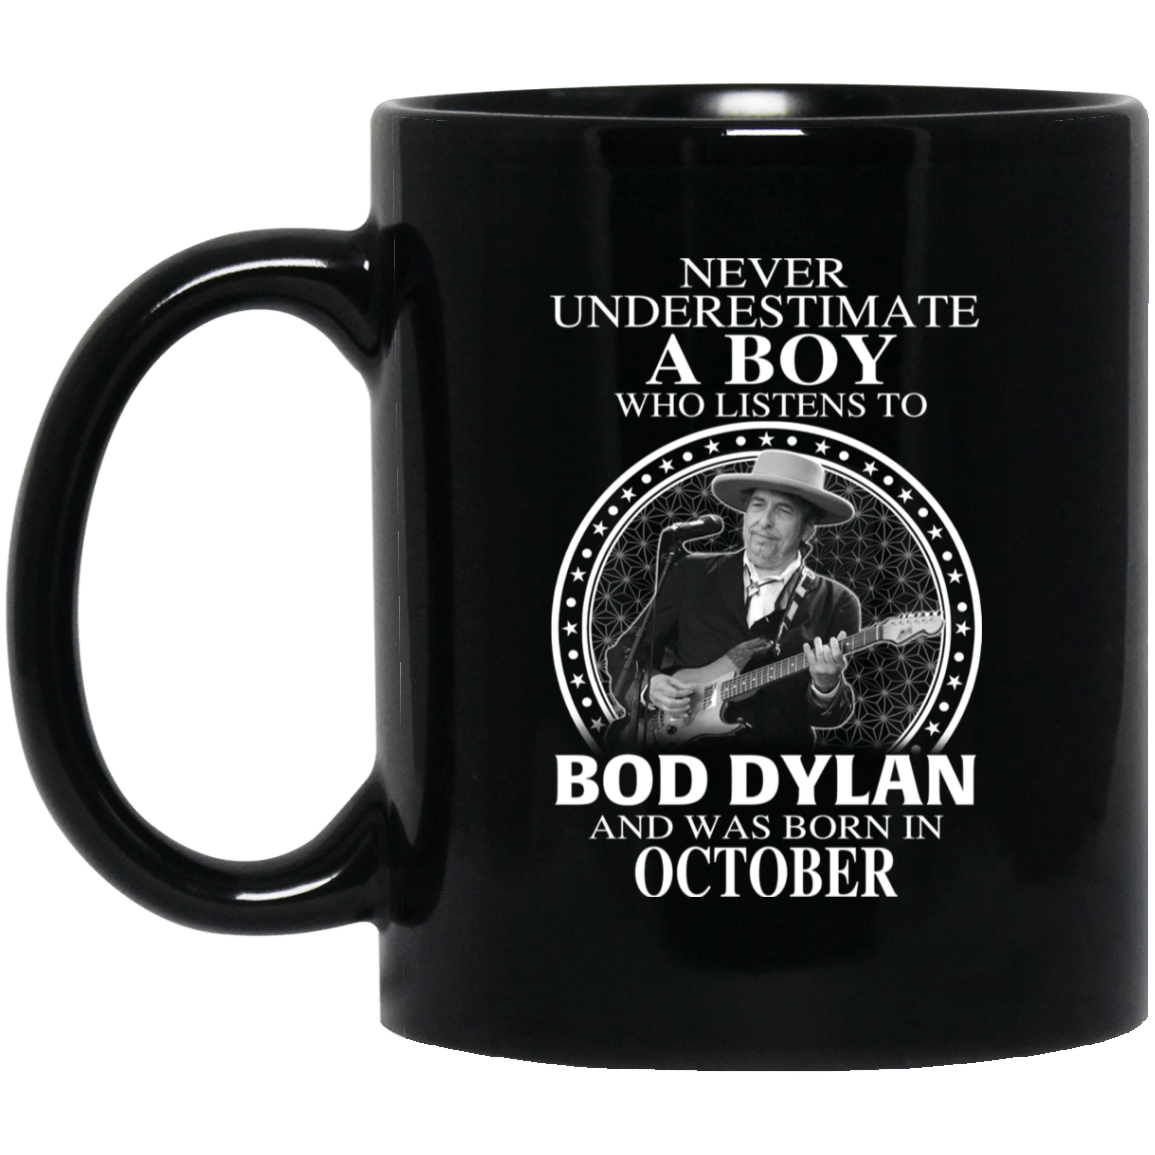 A Boy Who Listens To Bob Dylan And Was Born In October Mug 1065-10181-76154912-49307 - Tee Ript